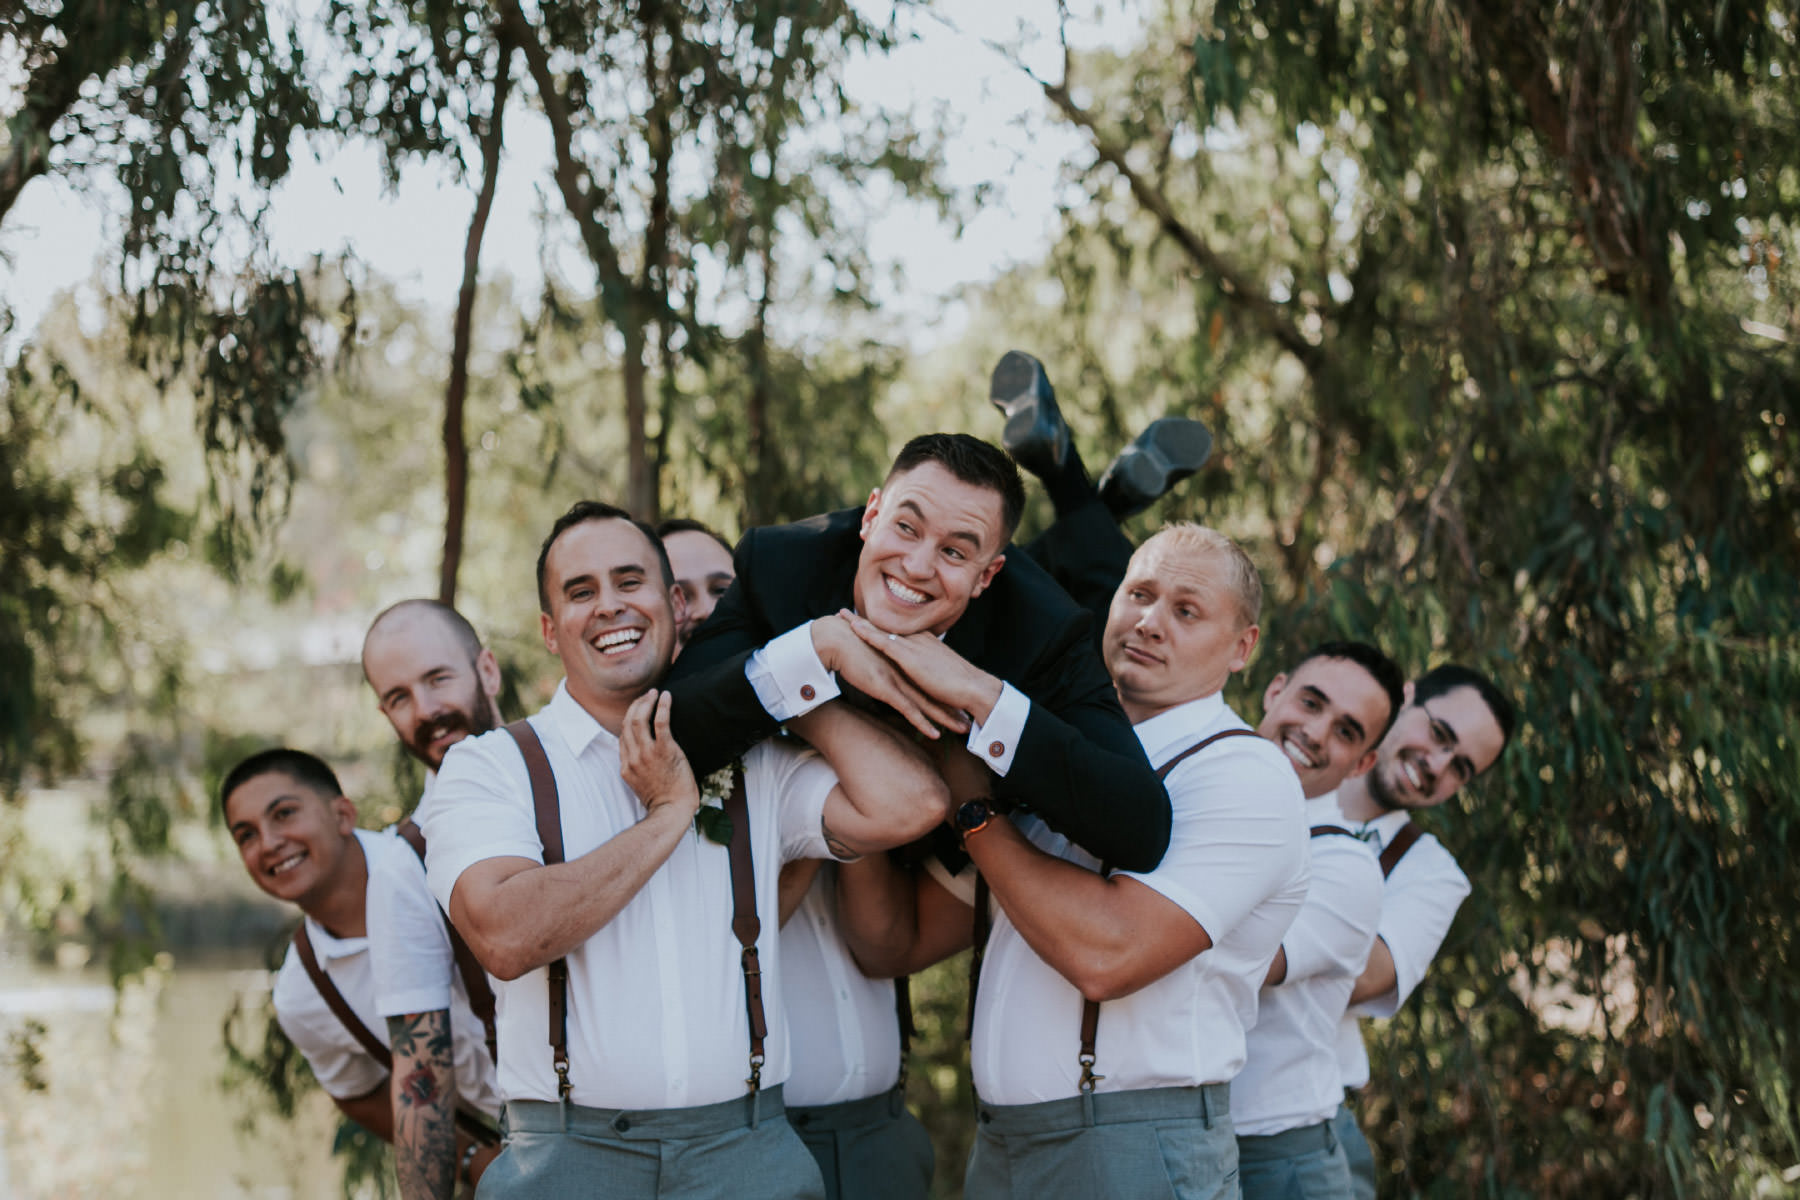 Silly groomsmen poses